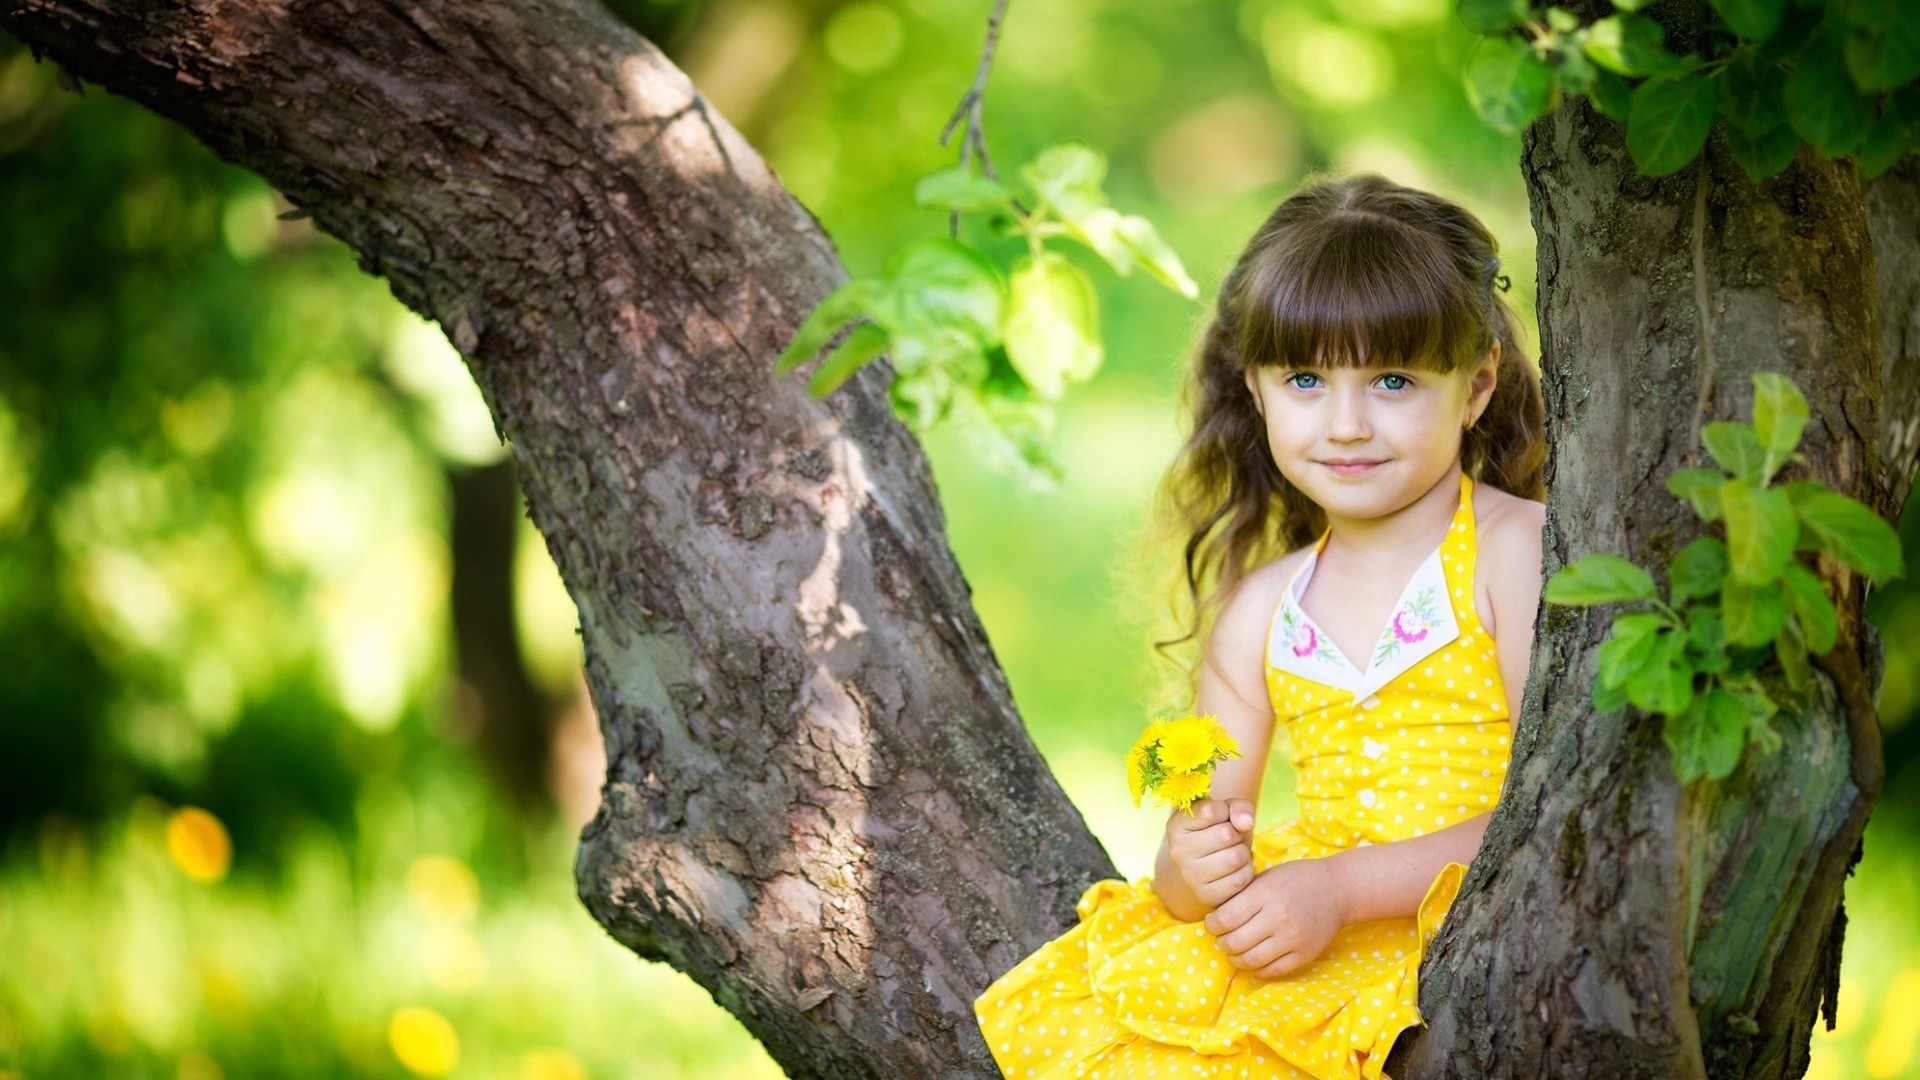 Find out: Lovely Girl in Yellow Dress wallpaper on https://hdpicorner.